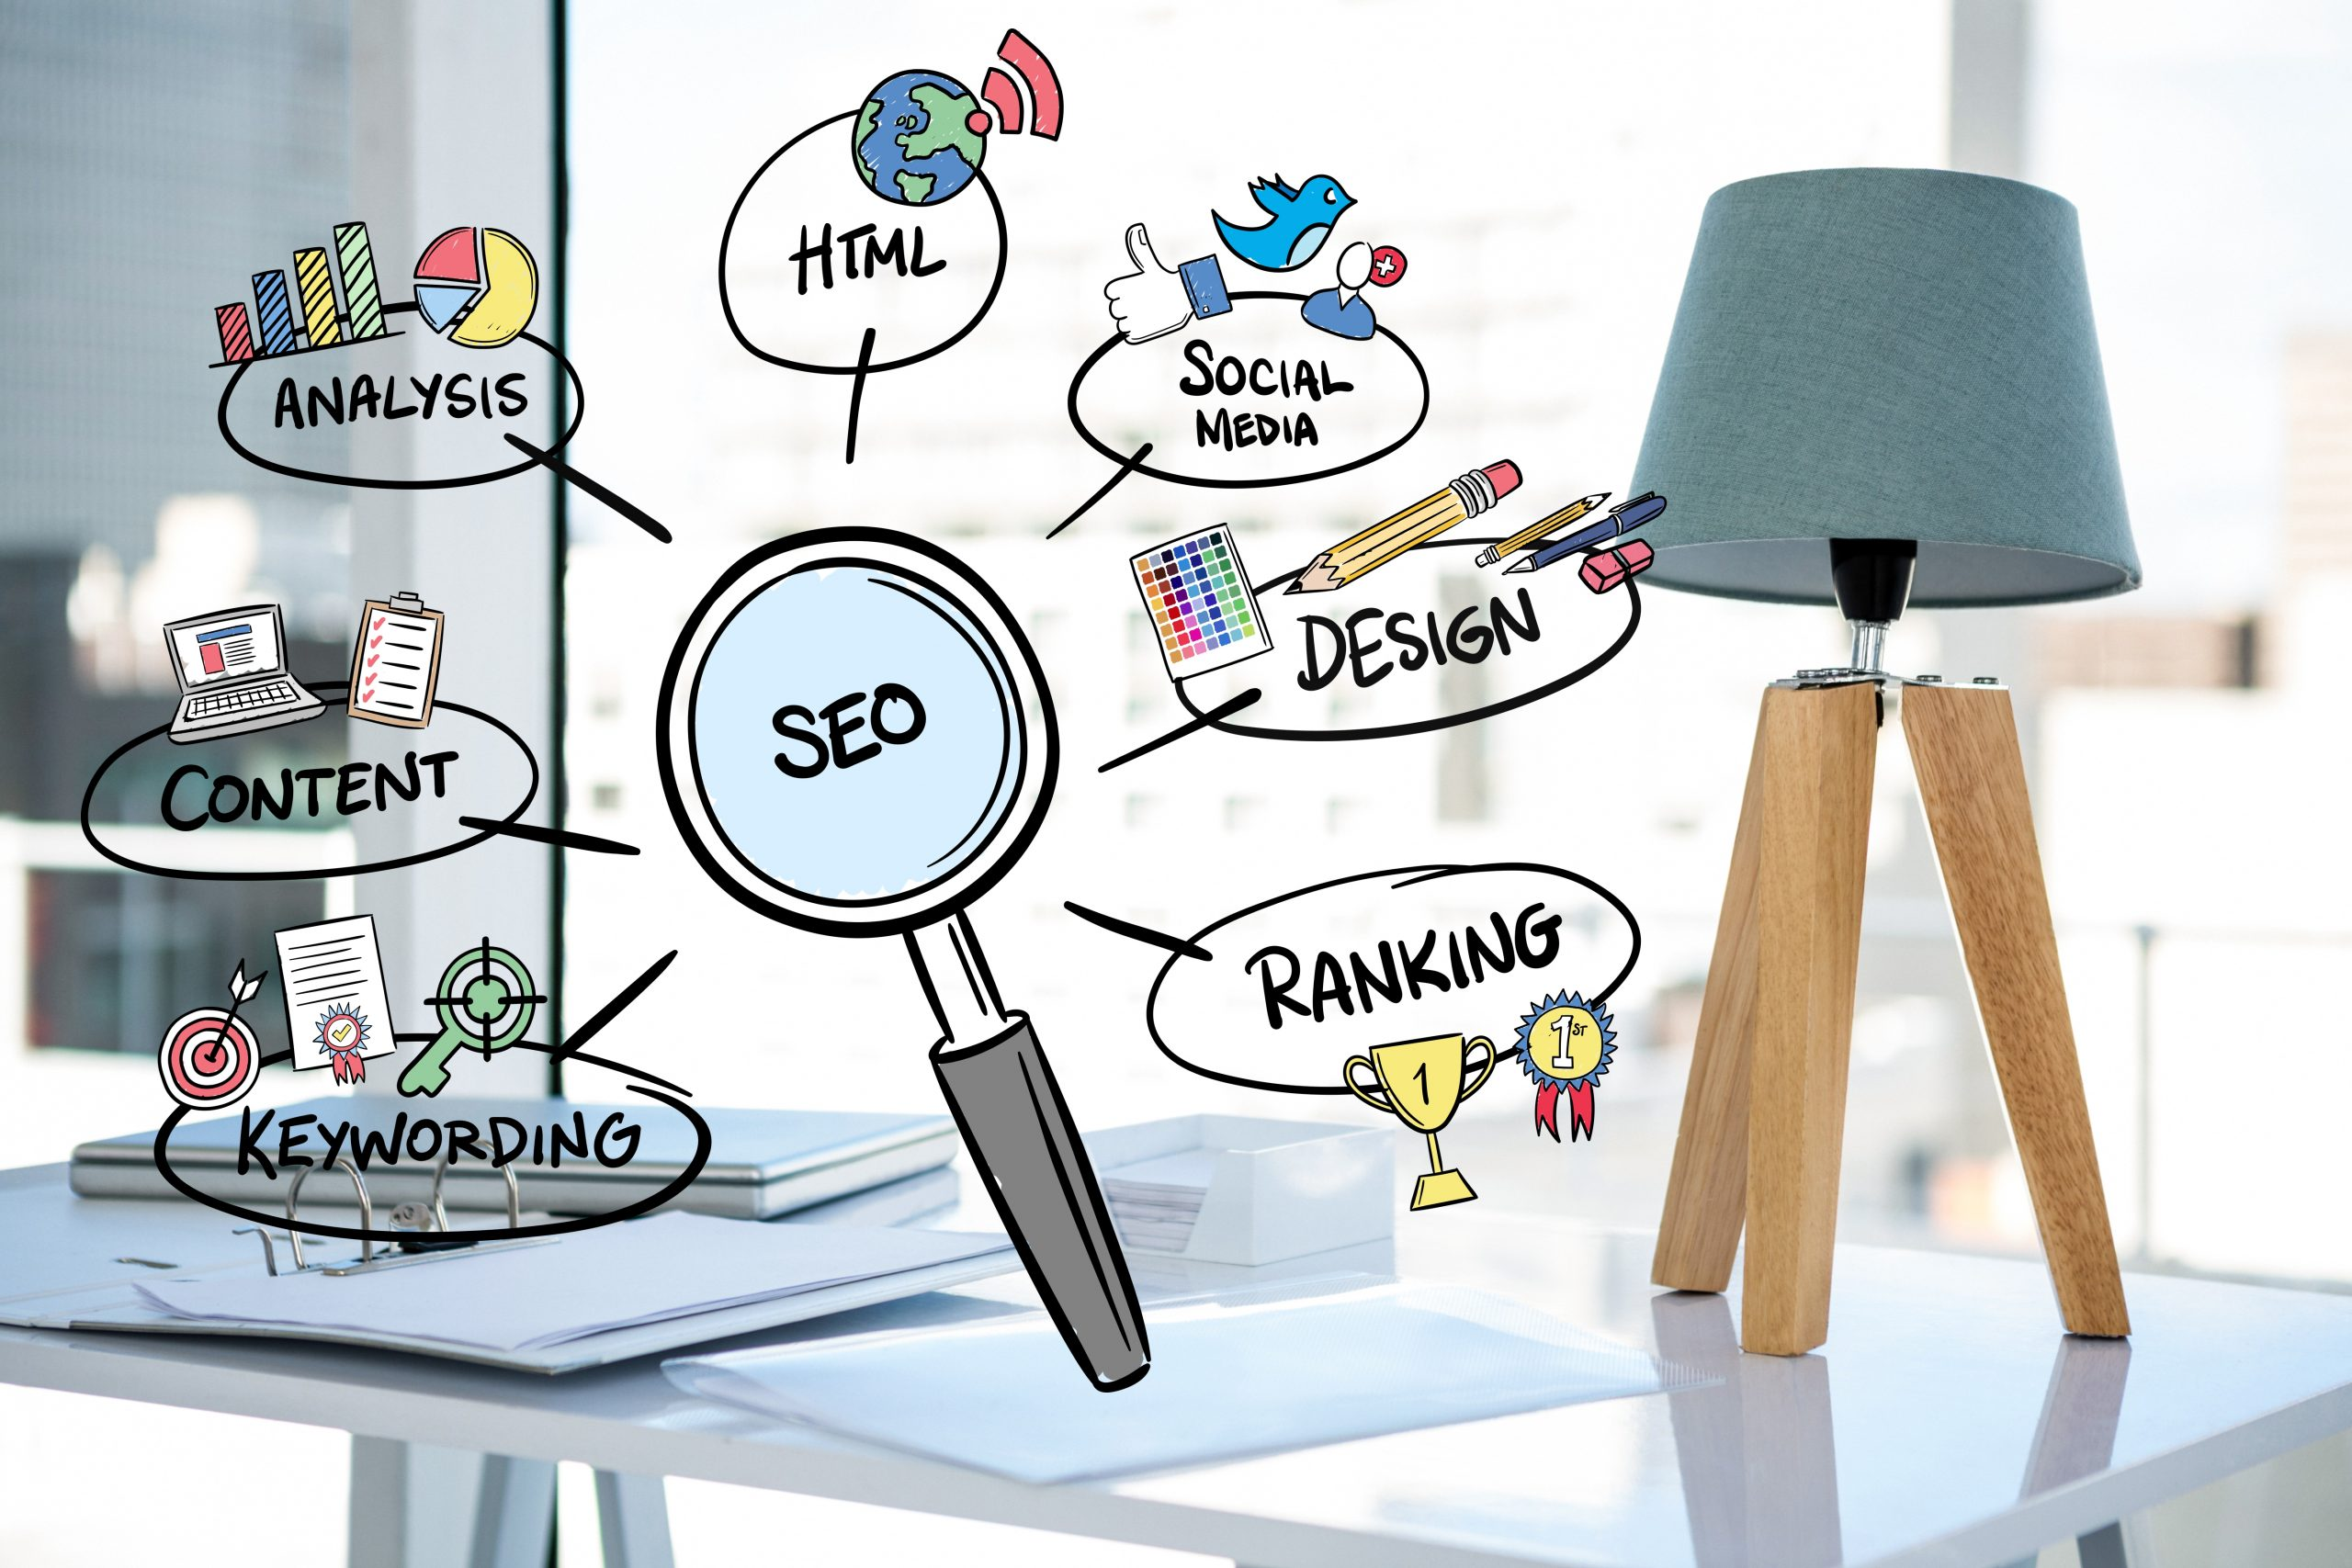 The concept of SEO